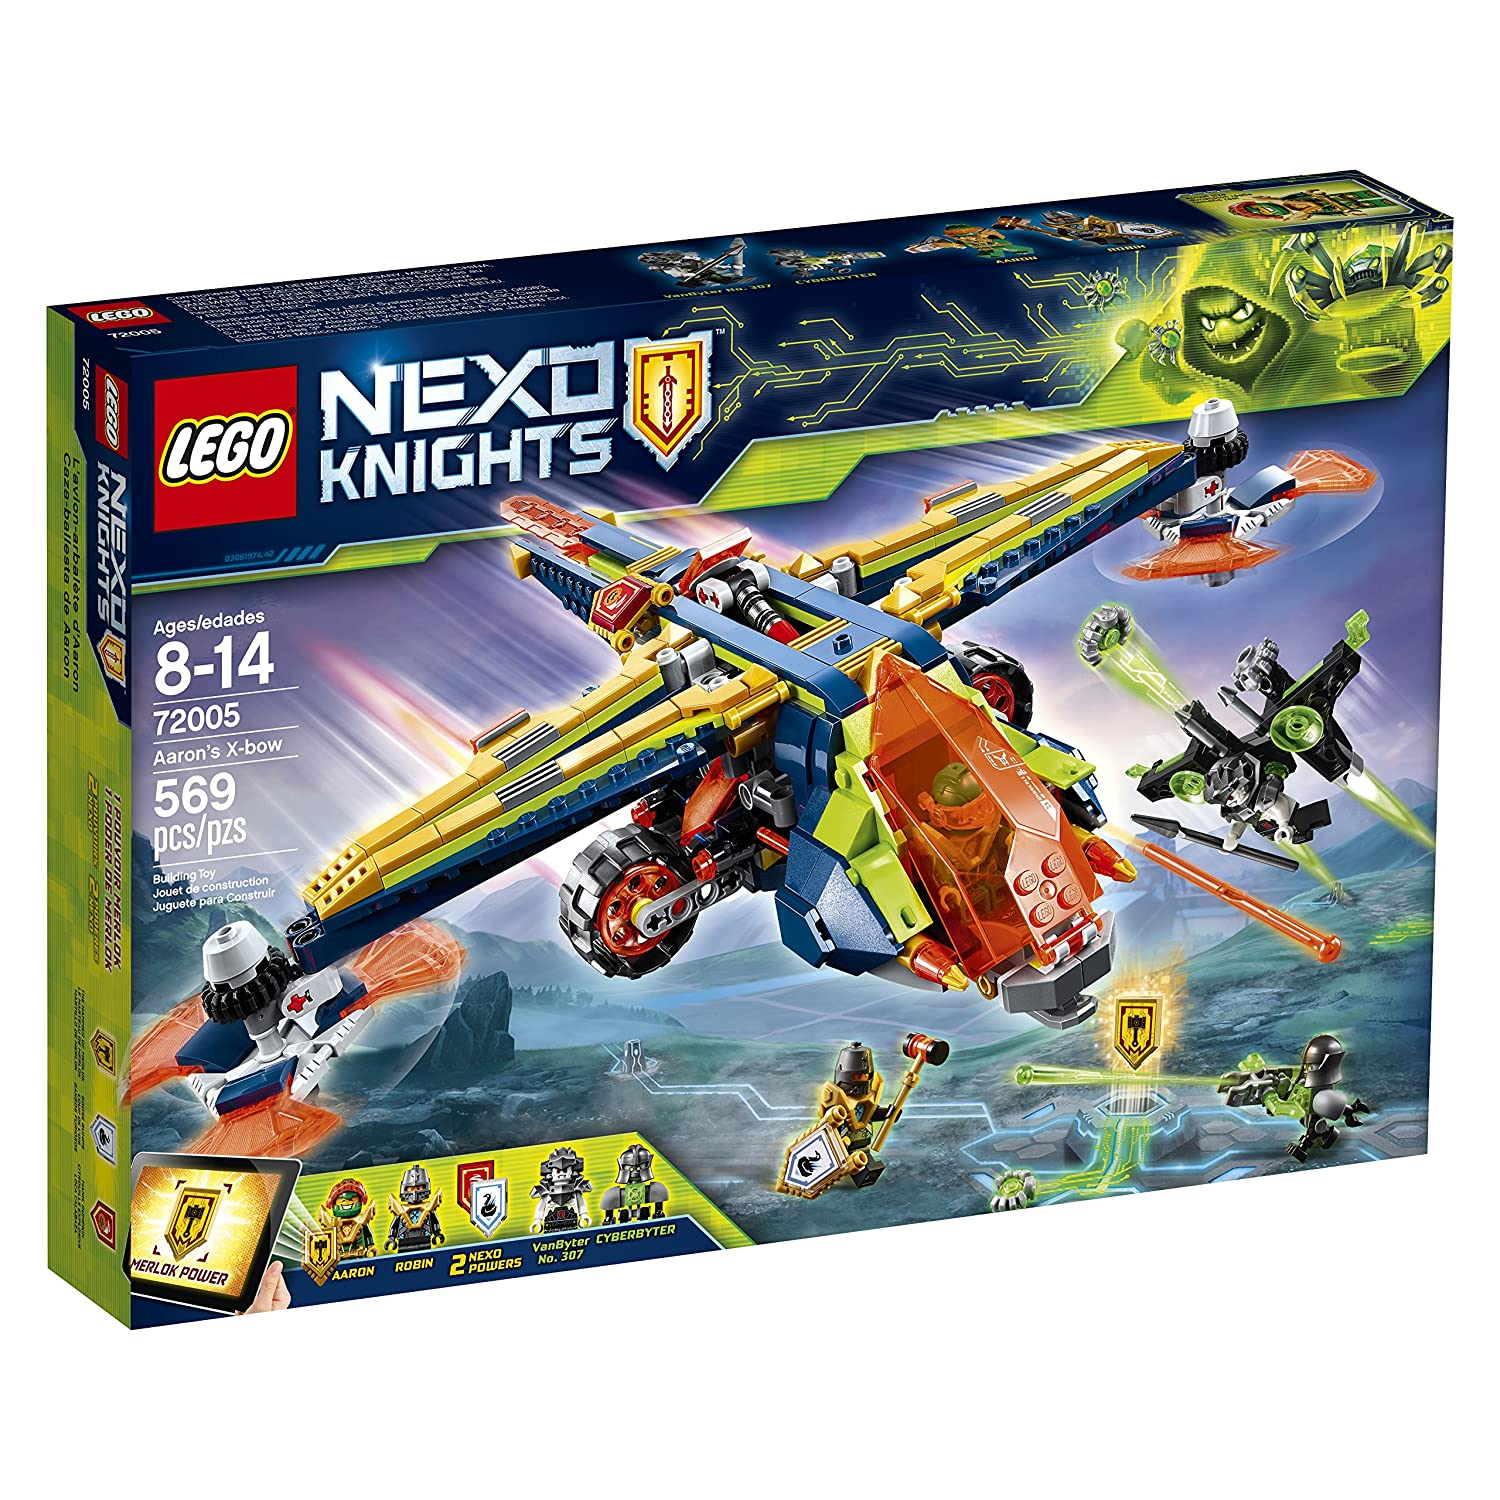 Top 9 Best LEGO Nexo Knights Set Reviews in 2021 12